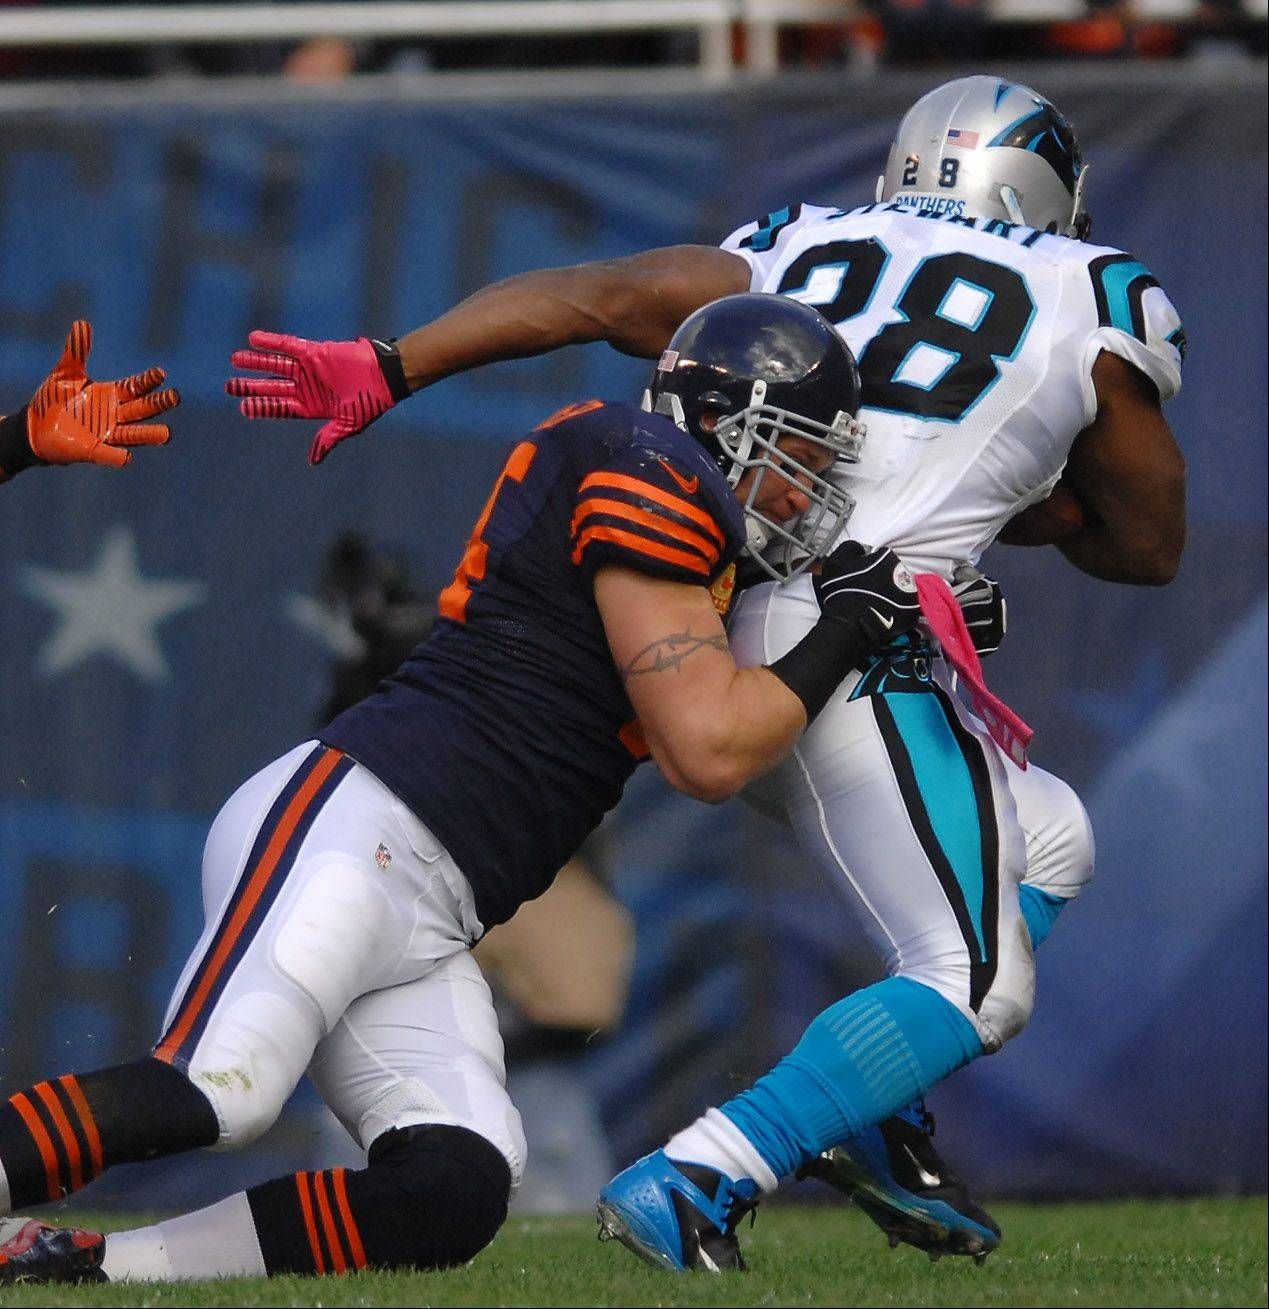 Chicago Bears middle linebacker Brian Urlacher (54) drags down Carolina Panthers running back Jonathan Stewart (28) during Sunday's game at Soldier Field in Chicago.